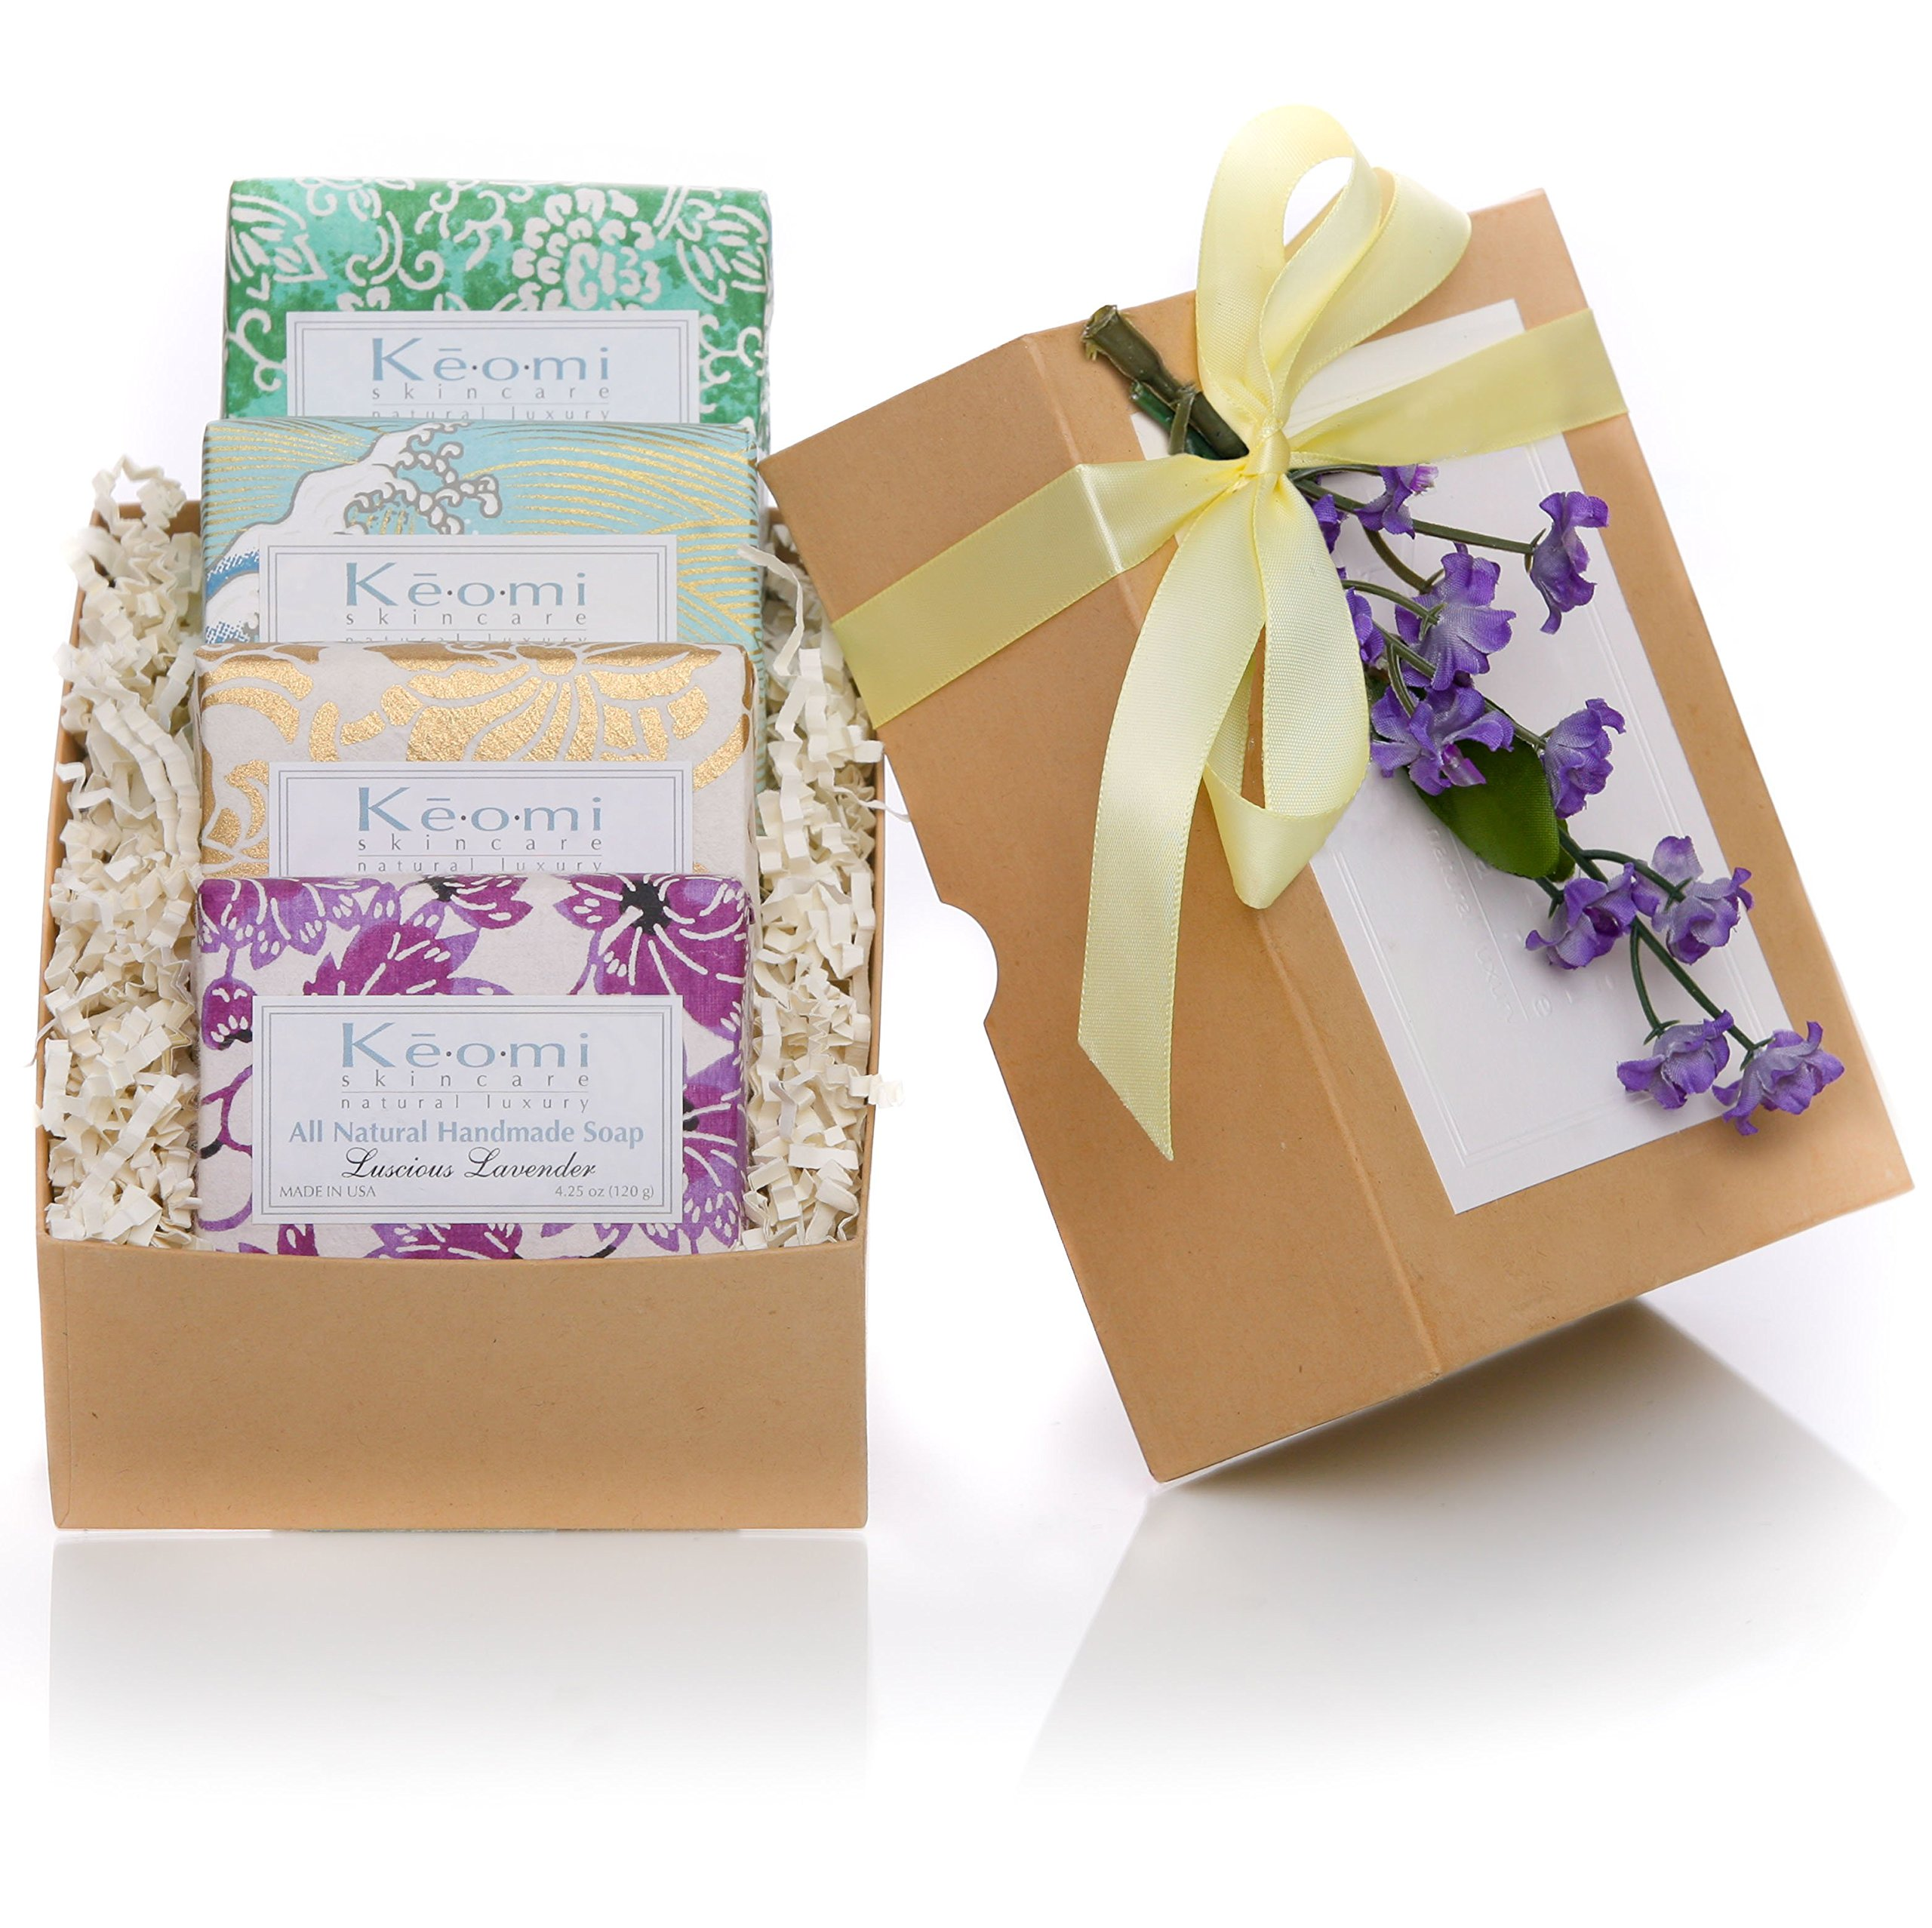 Soaps gift baskets for her